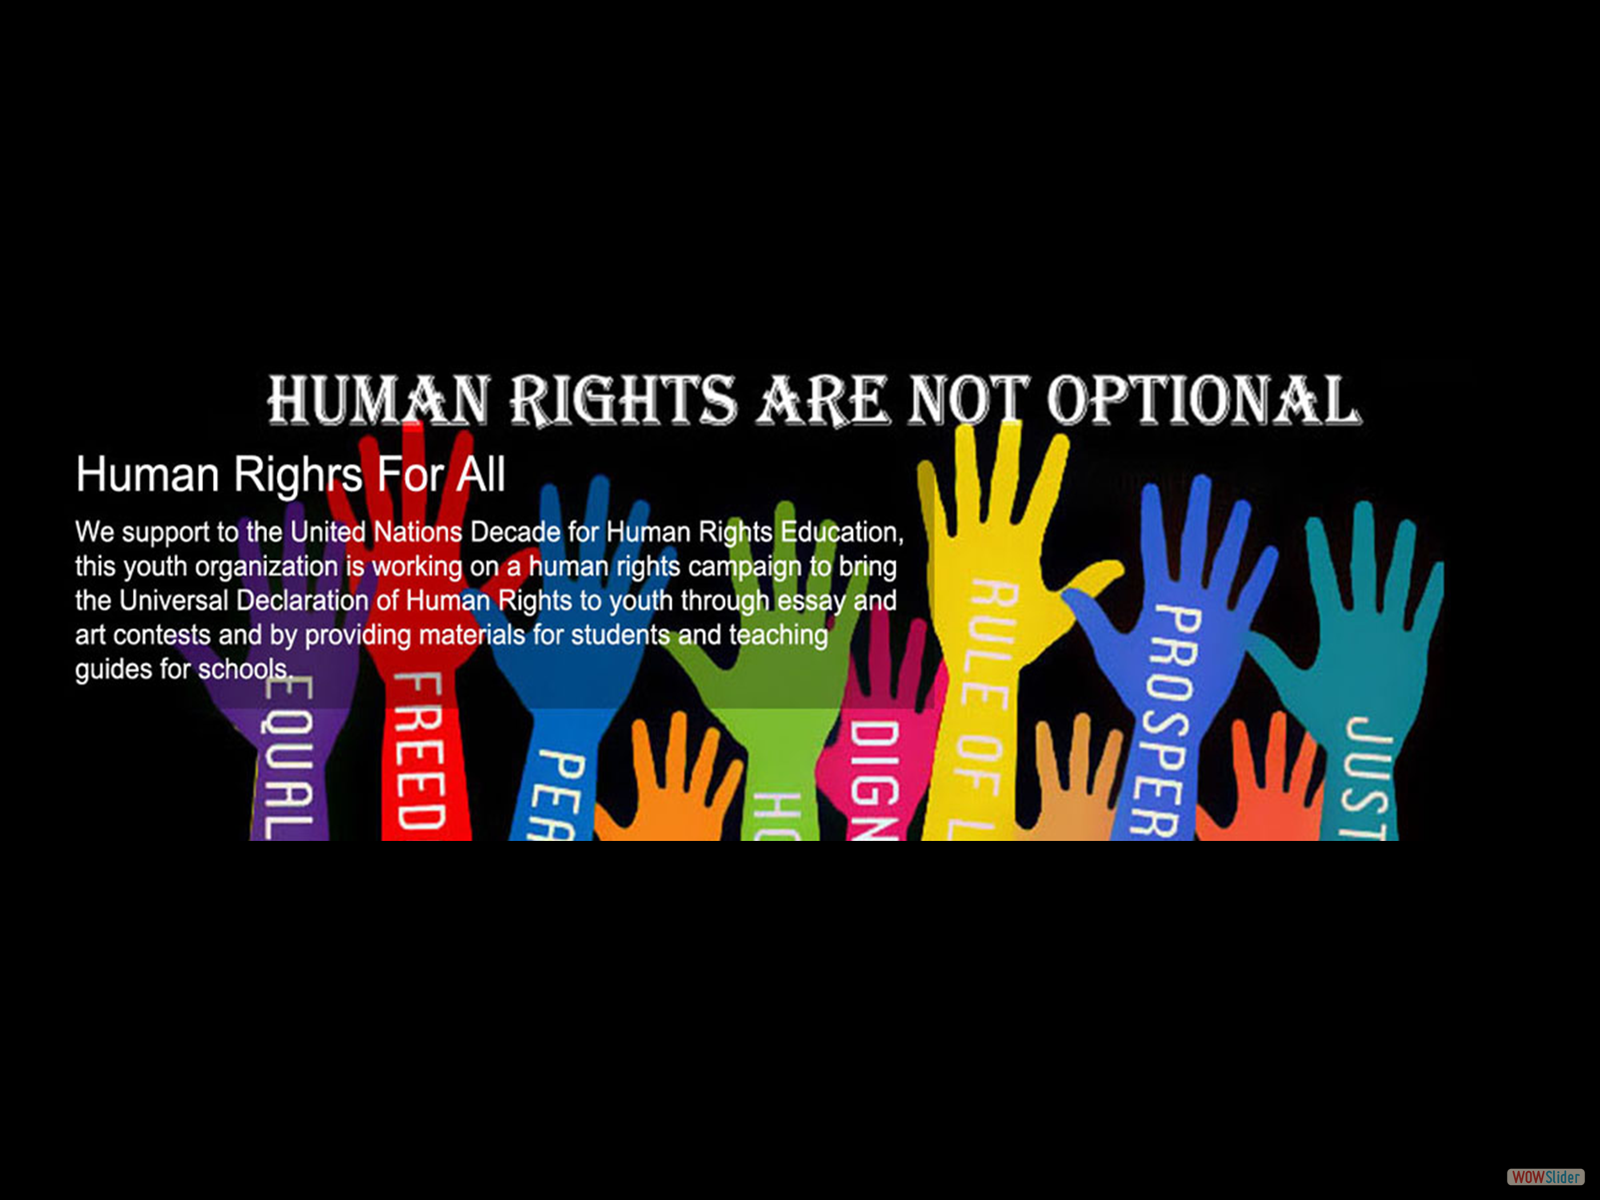 human+rights+education+organizations